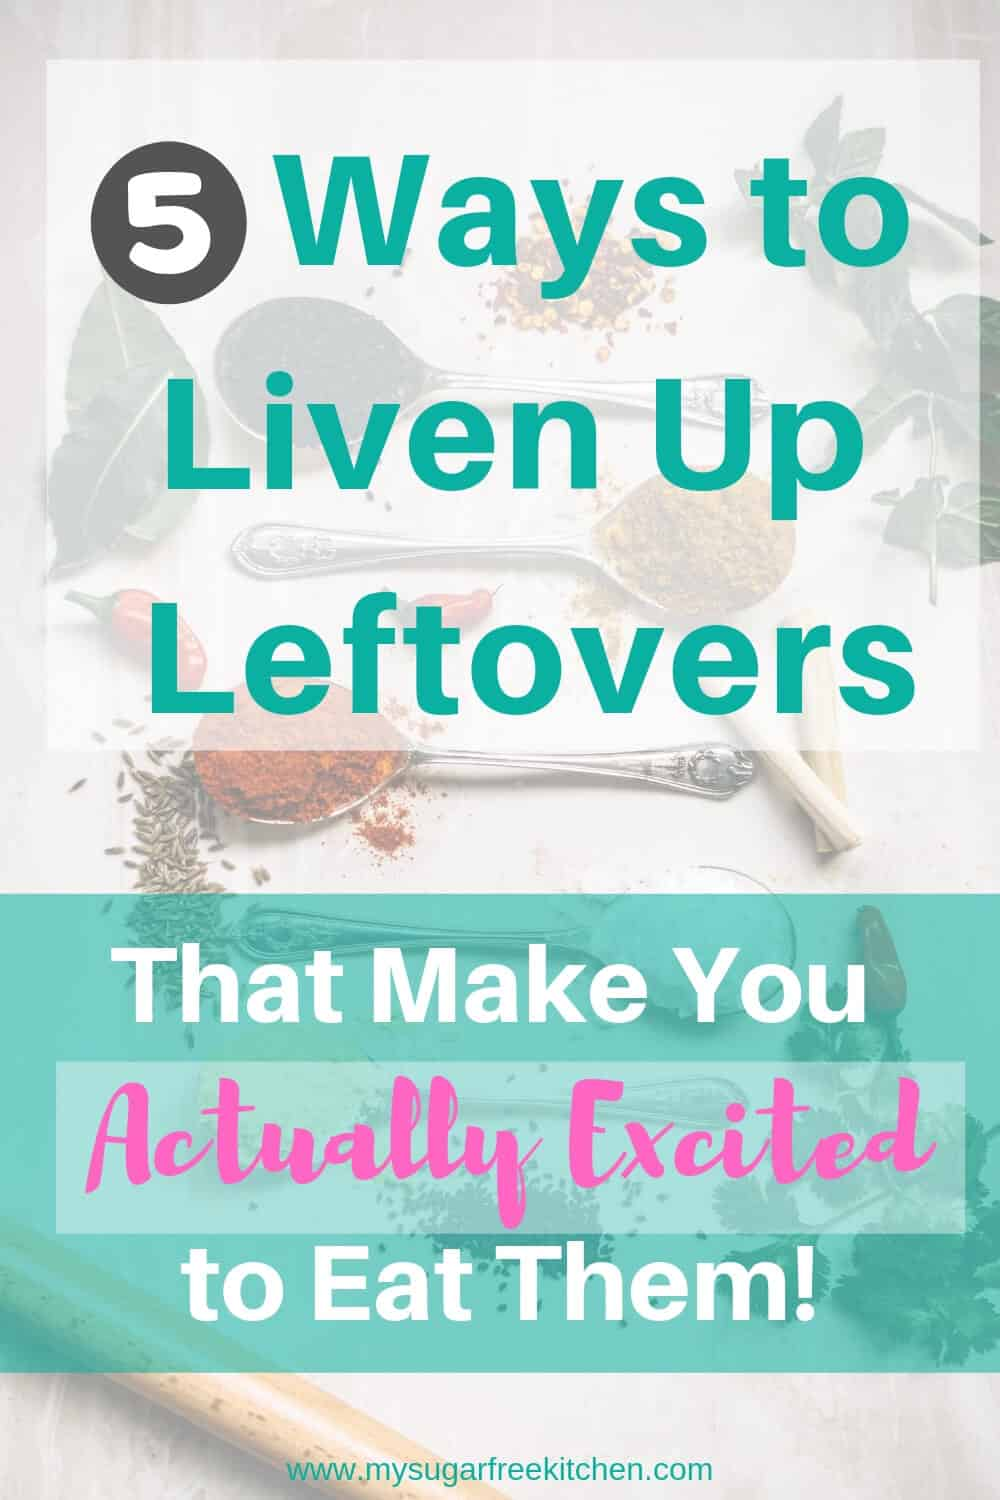 Liven Up Leftovers-Pinterest